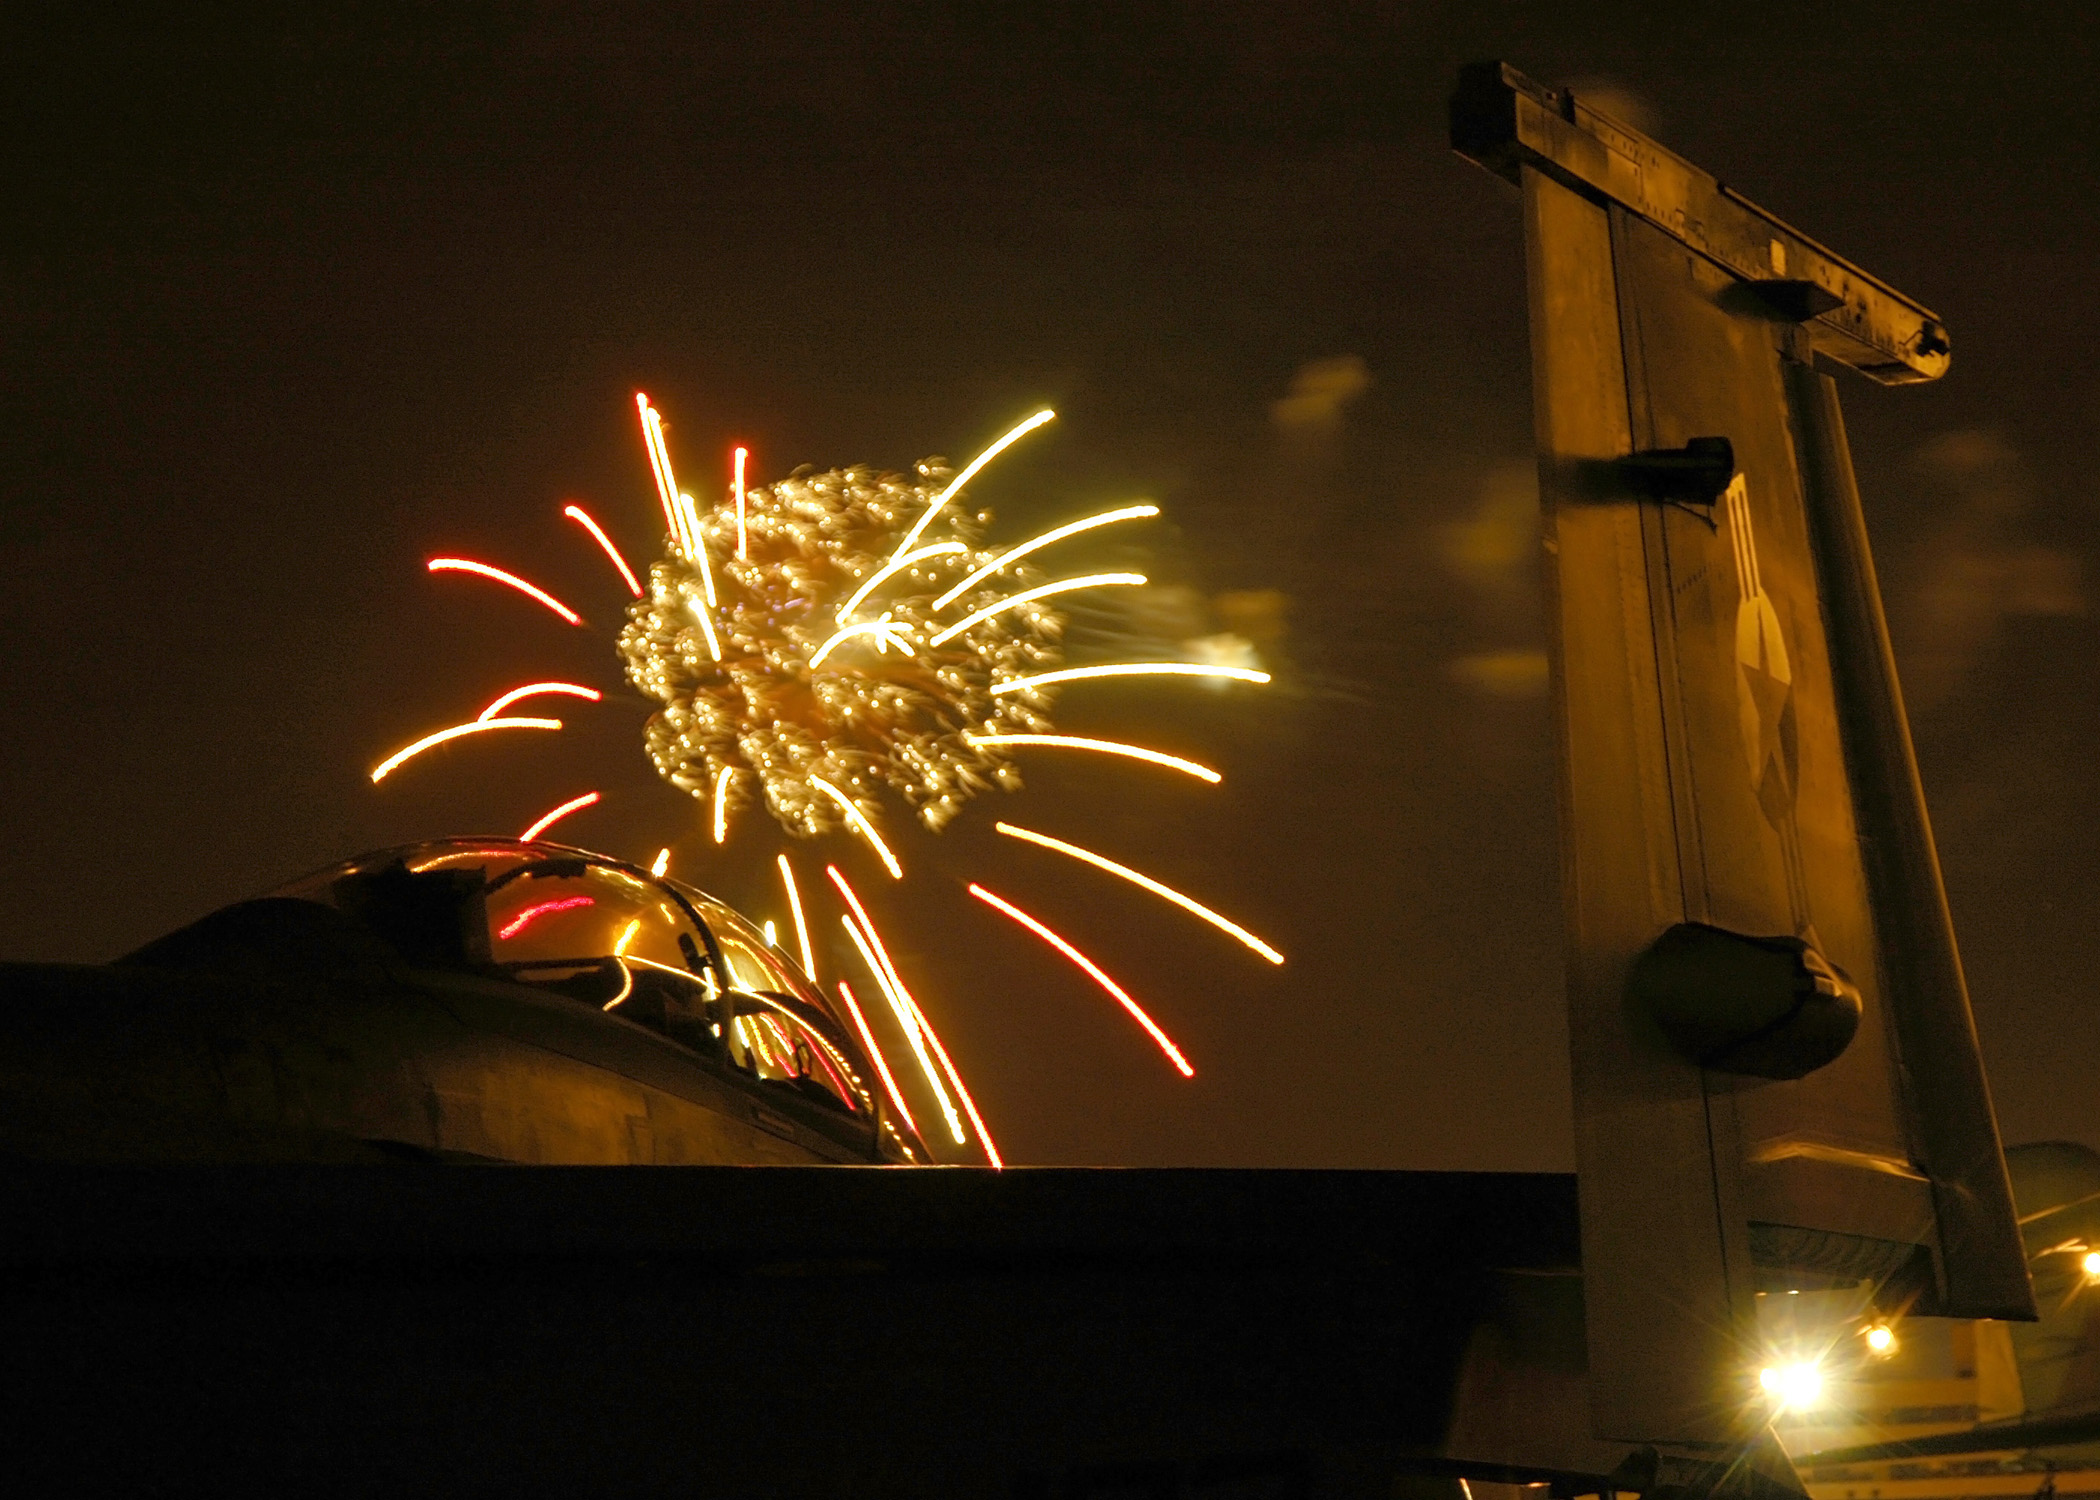 Fireworks explode over an F/A-18F Super Hornet on the flight deck of the Nimitz-class aircraft carrier USS Abraham Lincoln (CVN-72) during an Independence Day celebration at Naval Station Pearl Harbor in 2006. US Navy Photo